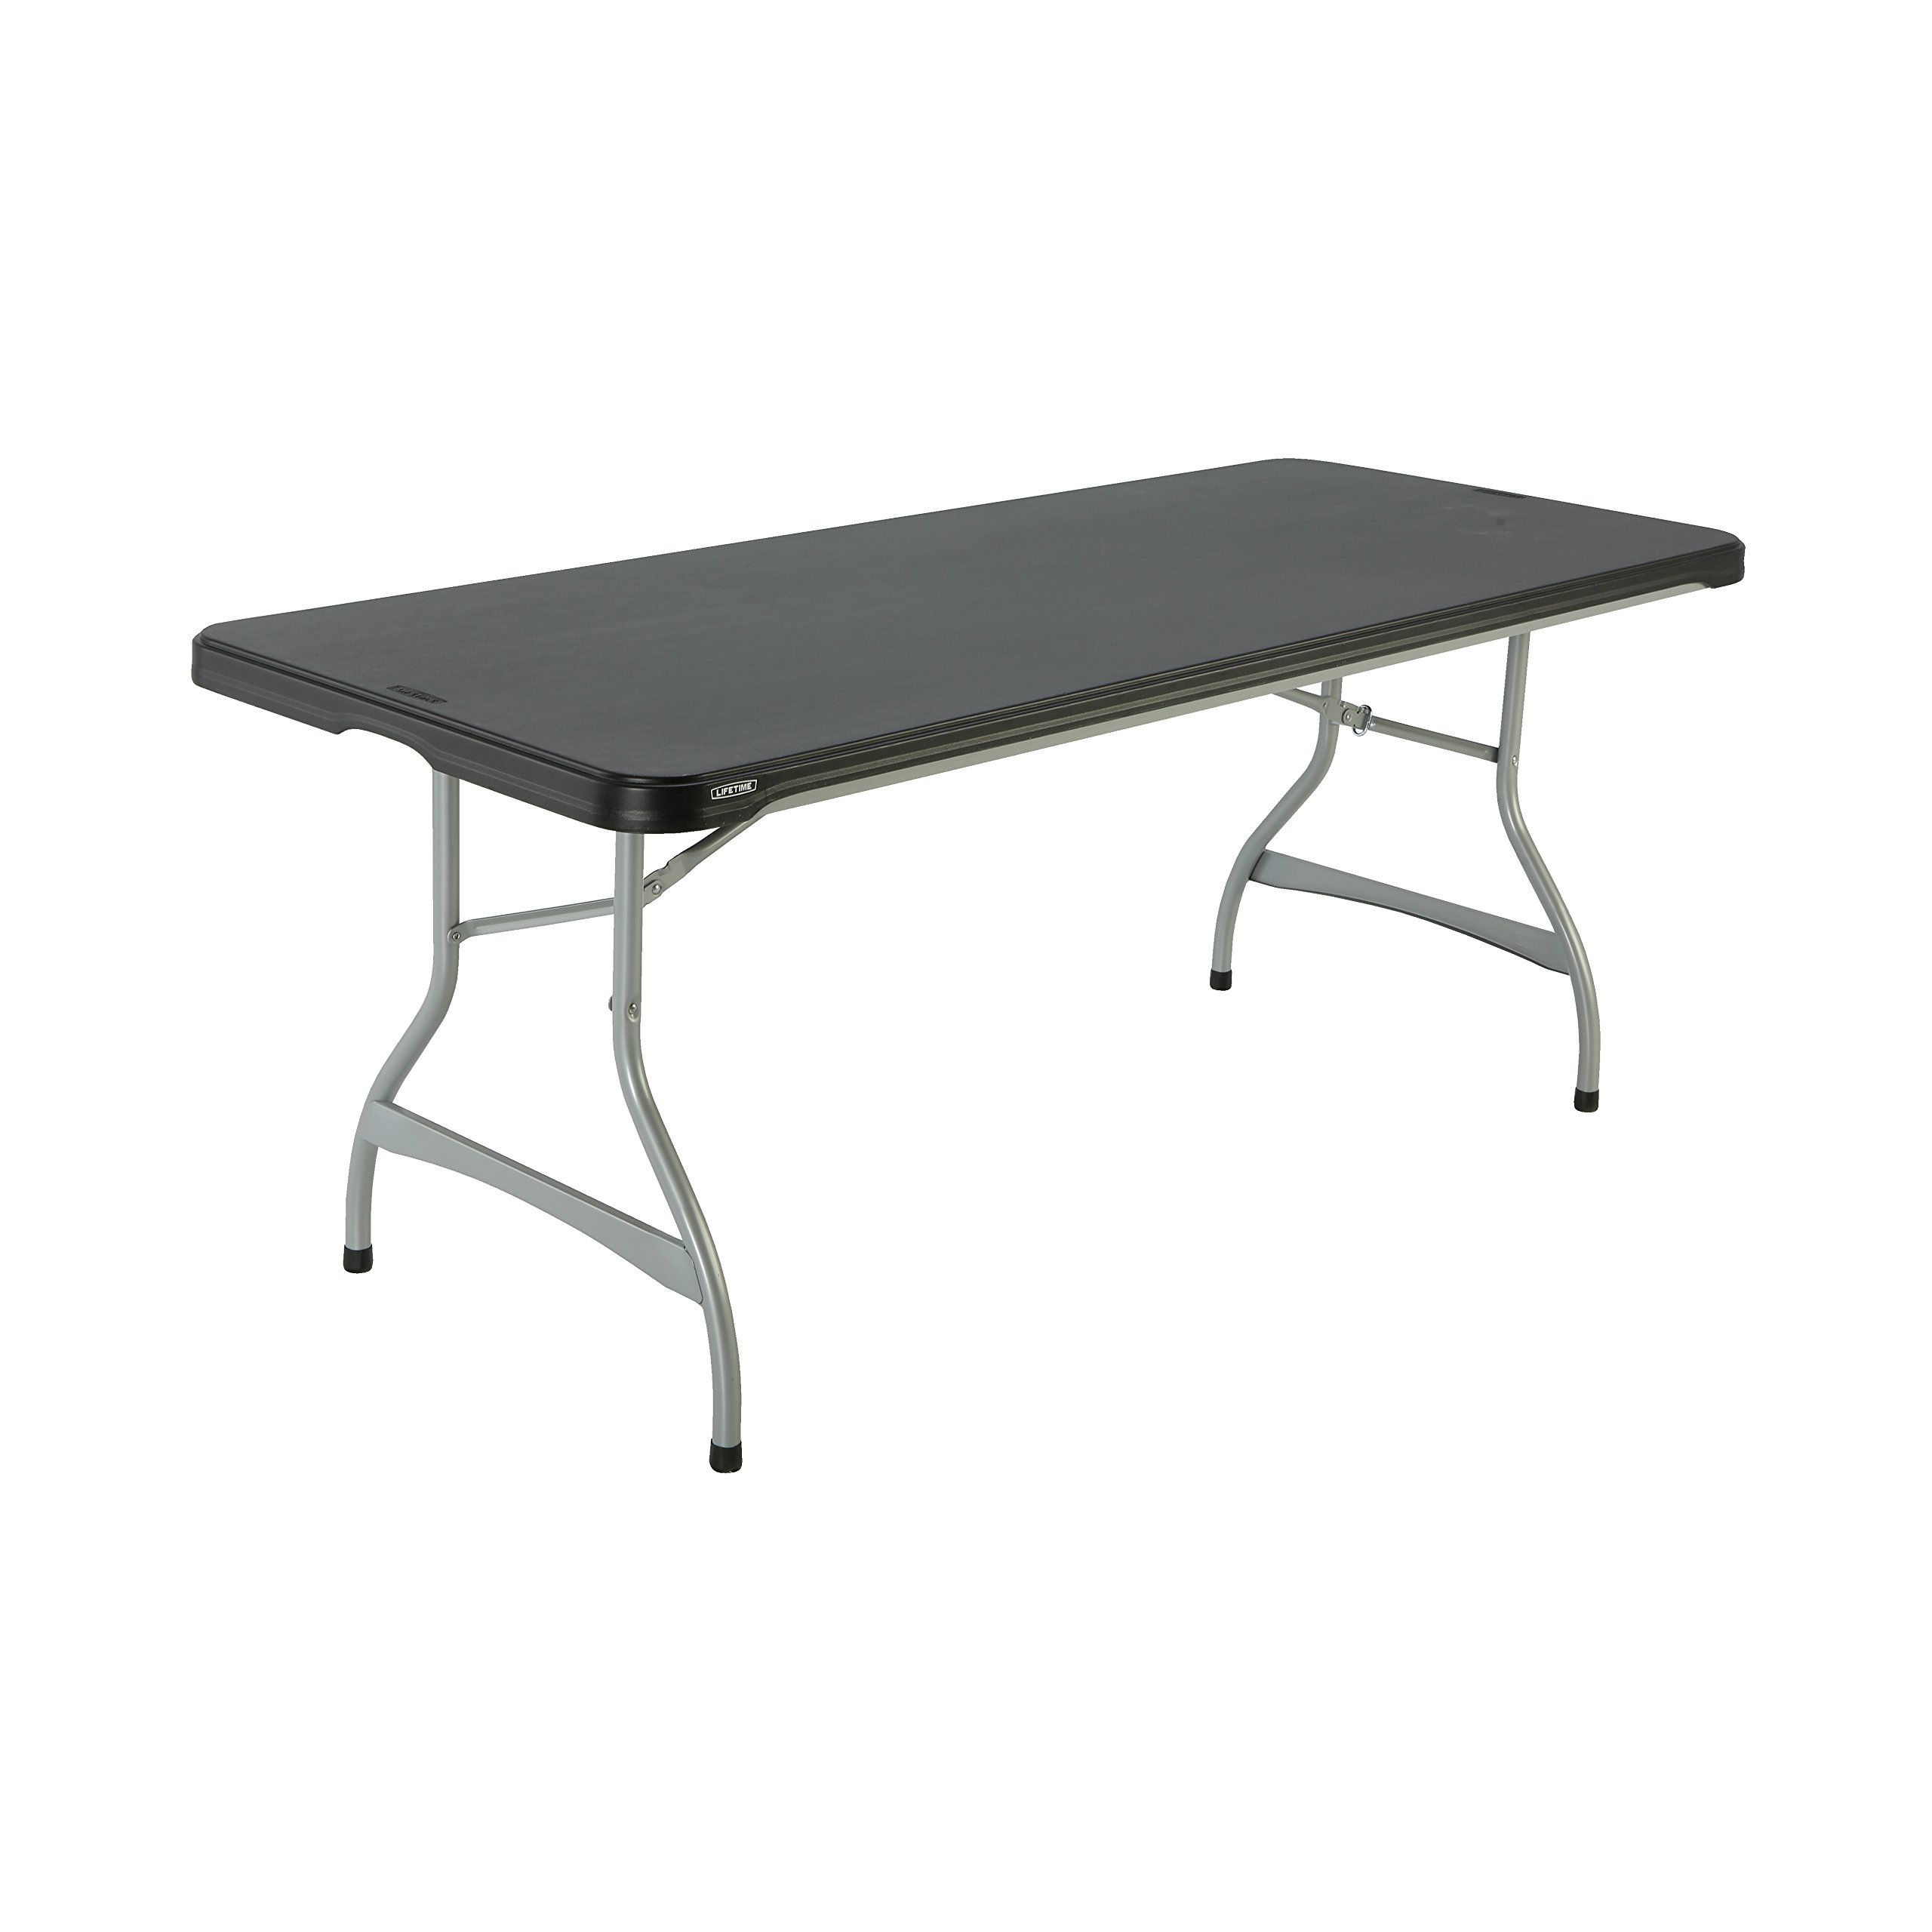 Lifetime Products 480350 Commercial Rectangular Folding Table (4 Pack), 6', Black